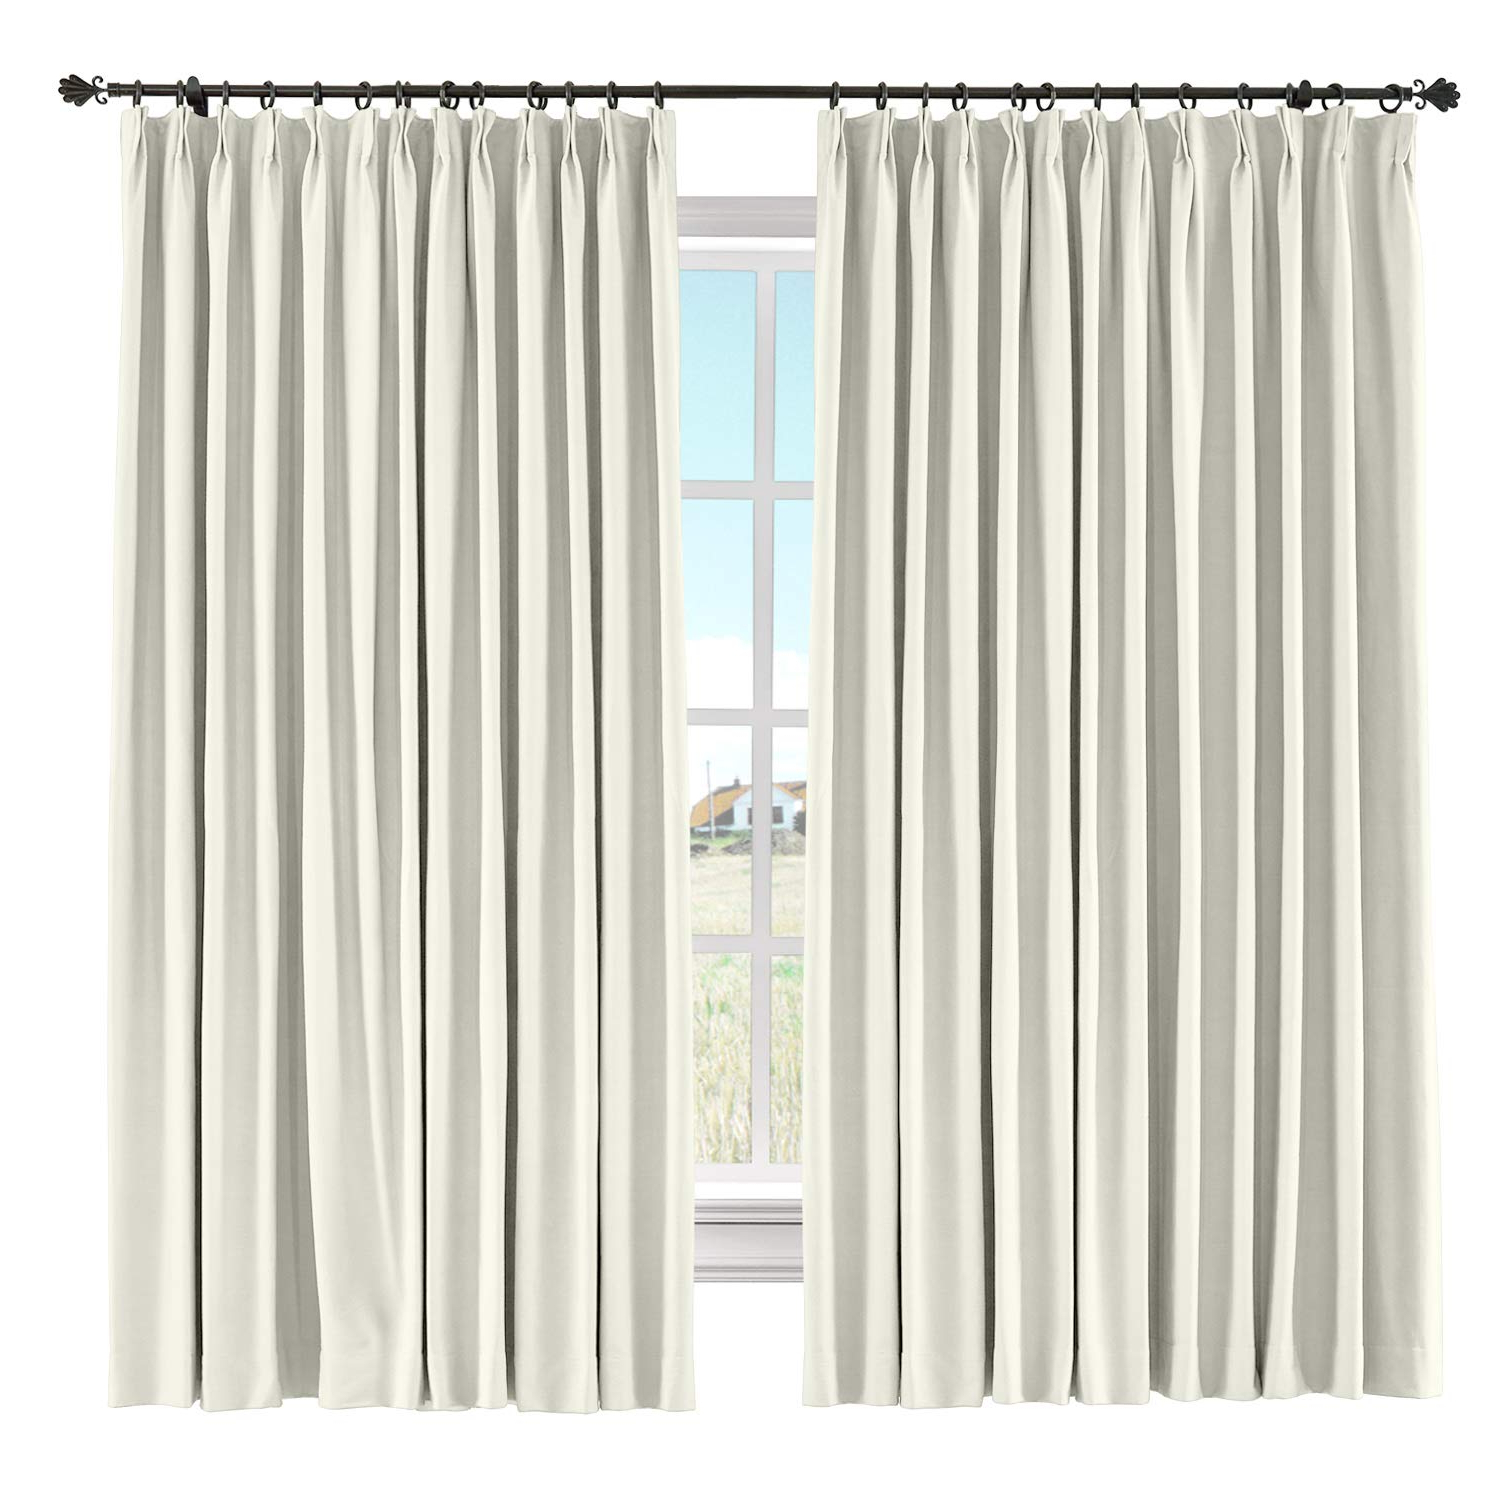 "Most Recently Released Solid Country Cotton Linen Weave Curtain Panels Pertaining To Chadmade Light Blocking Curtain Panel Cotton Linen Drape Window Treatments  Curtain Solid Pinch Pleated Curtain Window Short Curtain, 60"" W X 108"" L (View 10 of 20)"